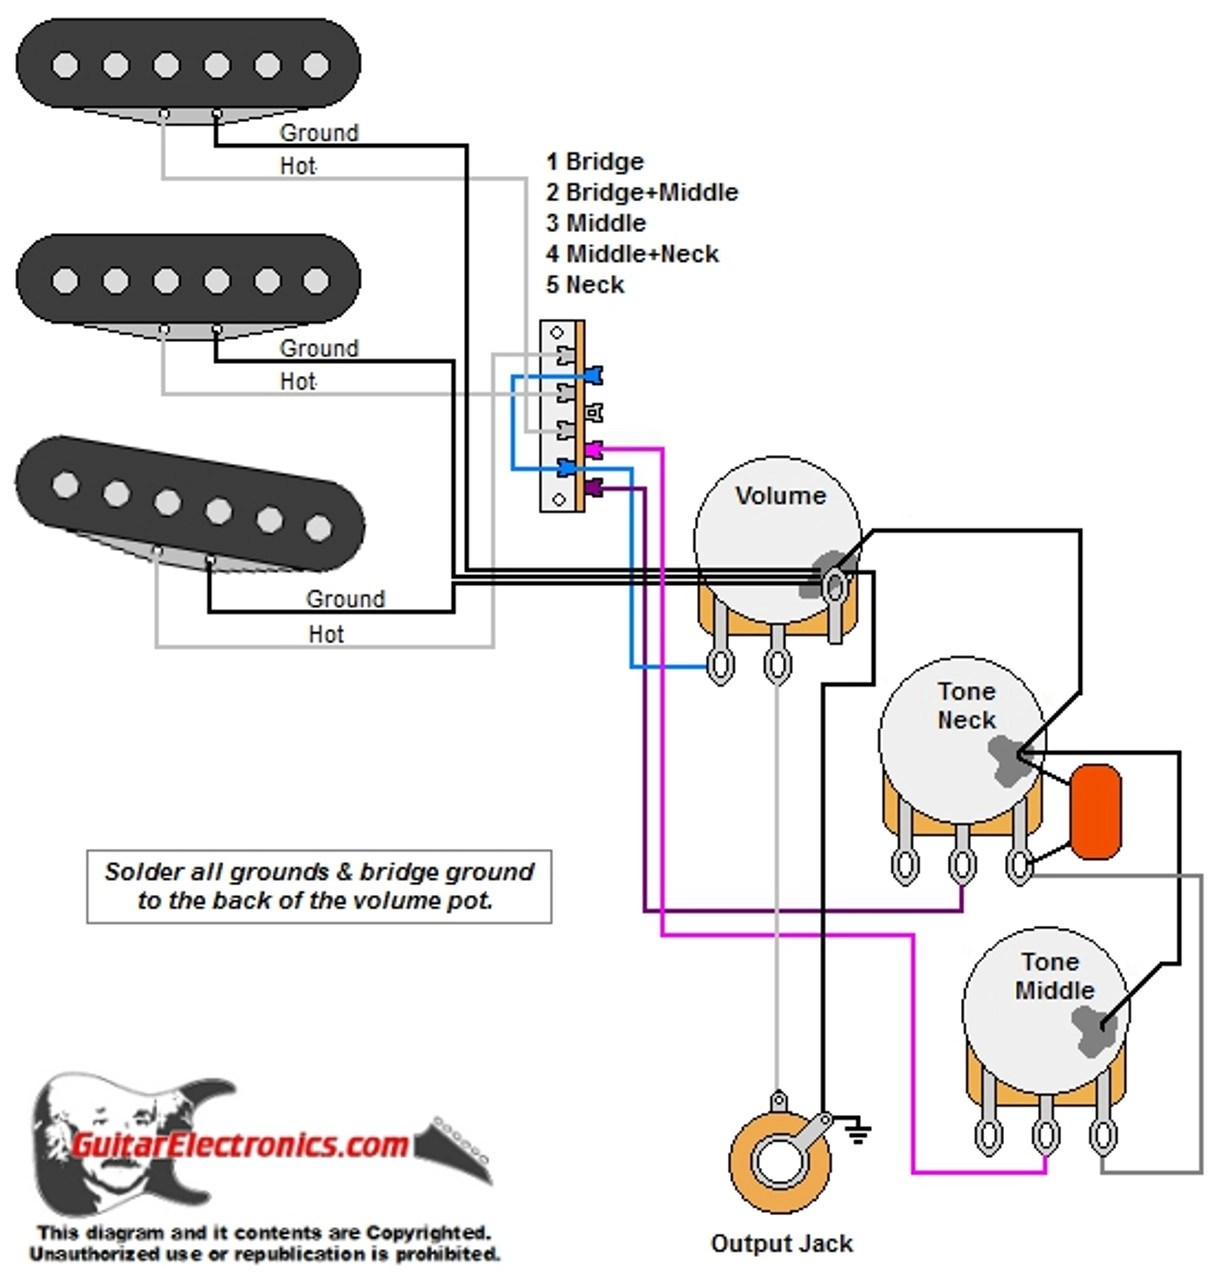 small resolution of fender strat wiring diagrams wiring diagram schematicstrat style guitar wiring diagram fender squier strat wiring diagram